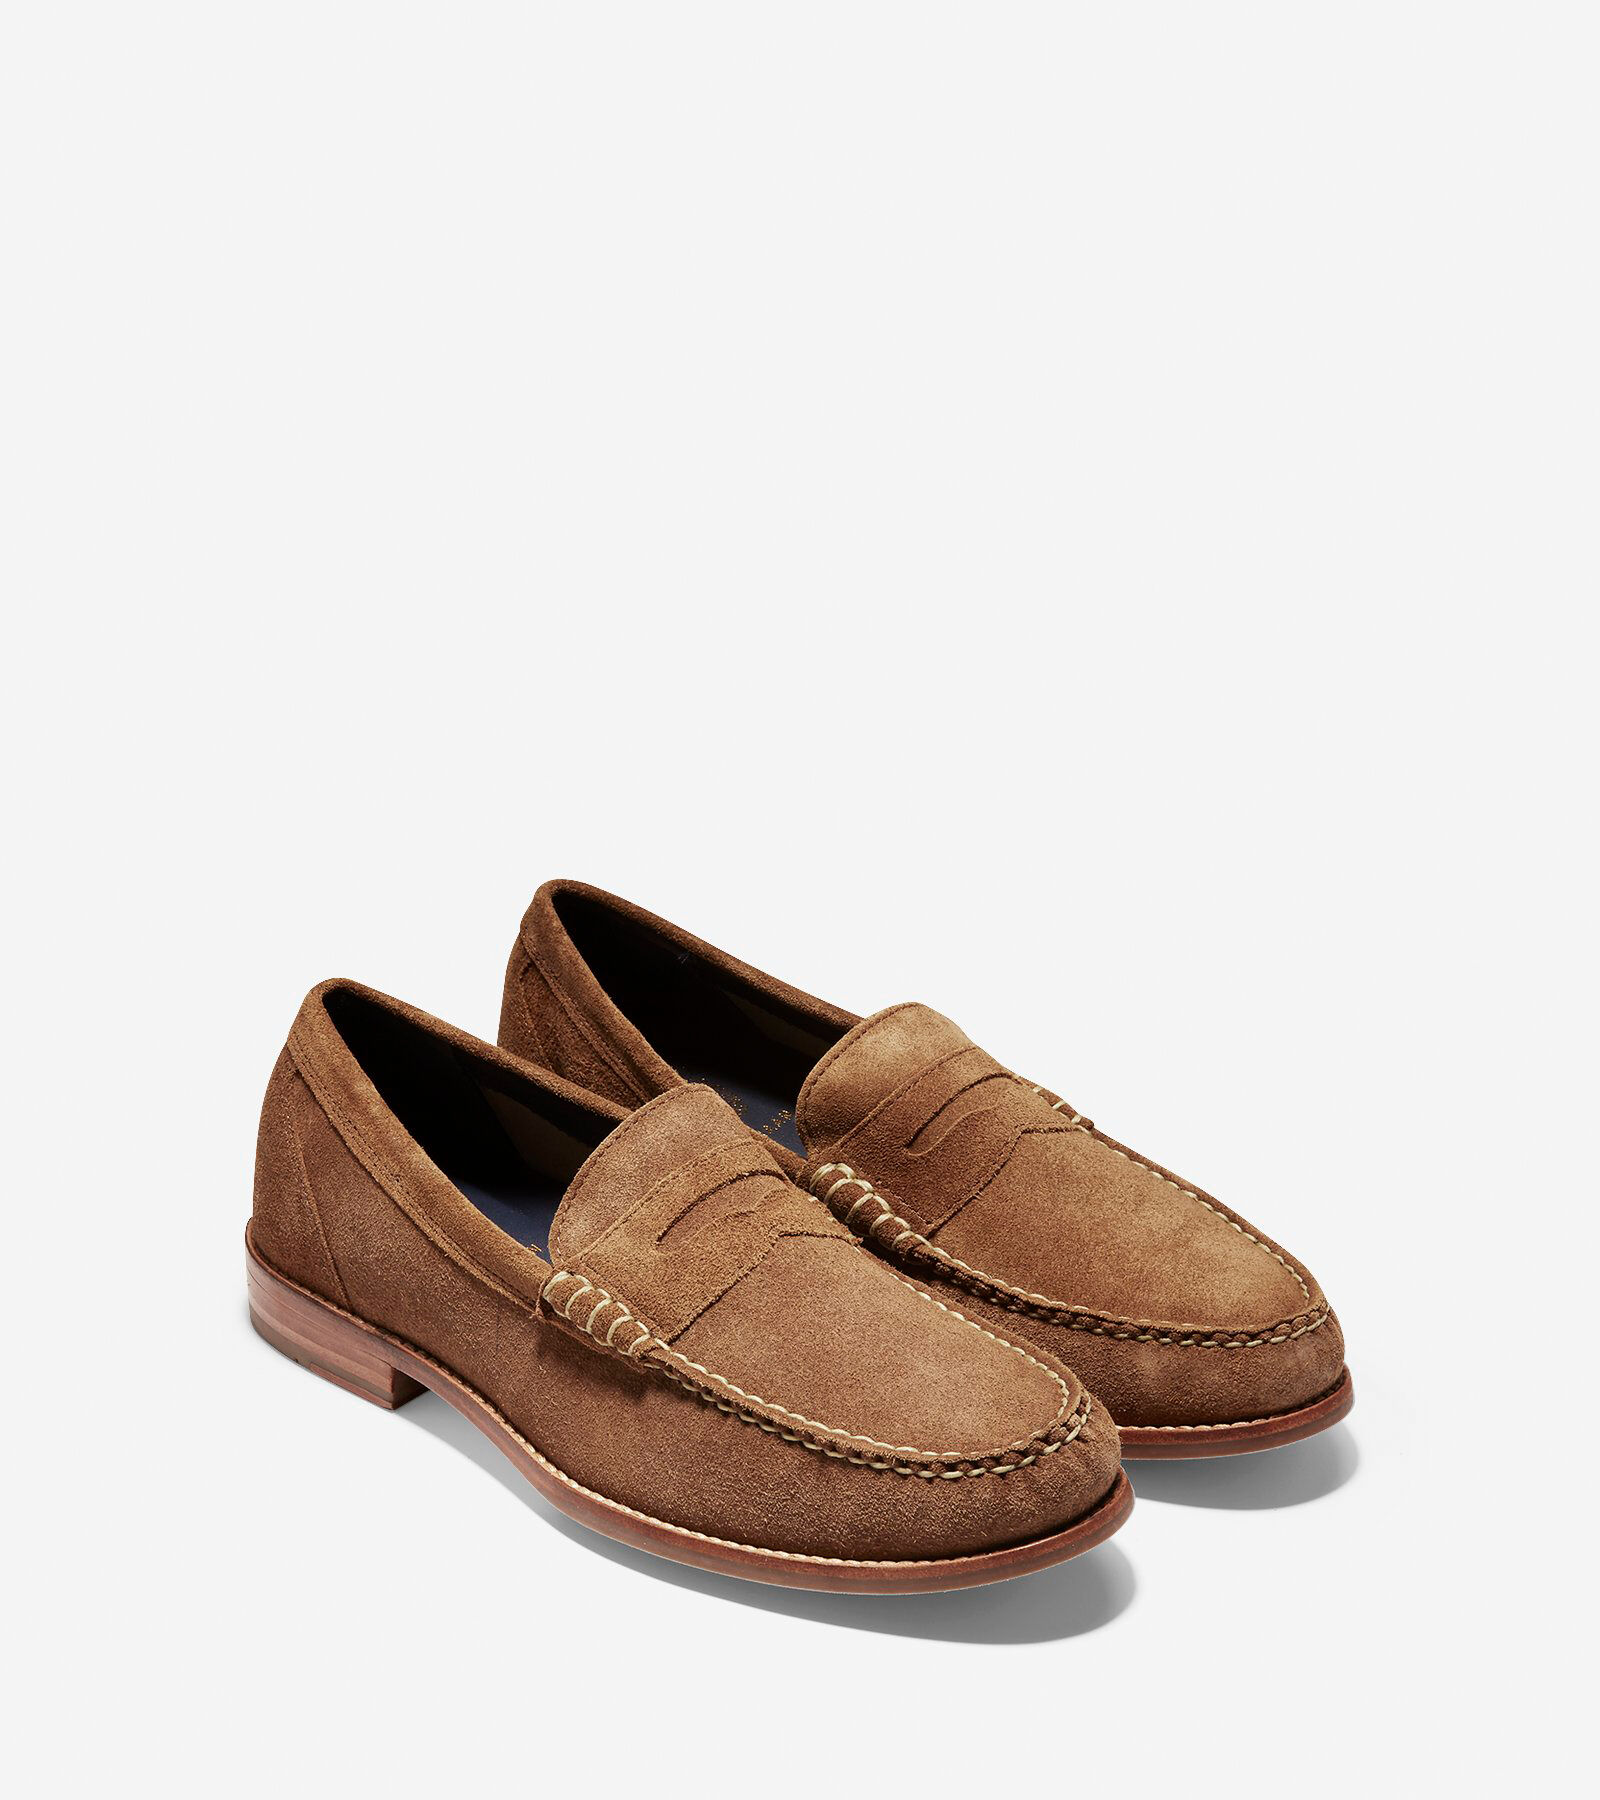 Cole HaanPinch Grand Casual Penny Loafer pT9ag